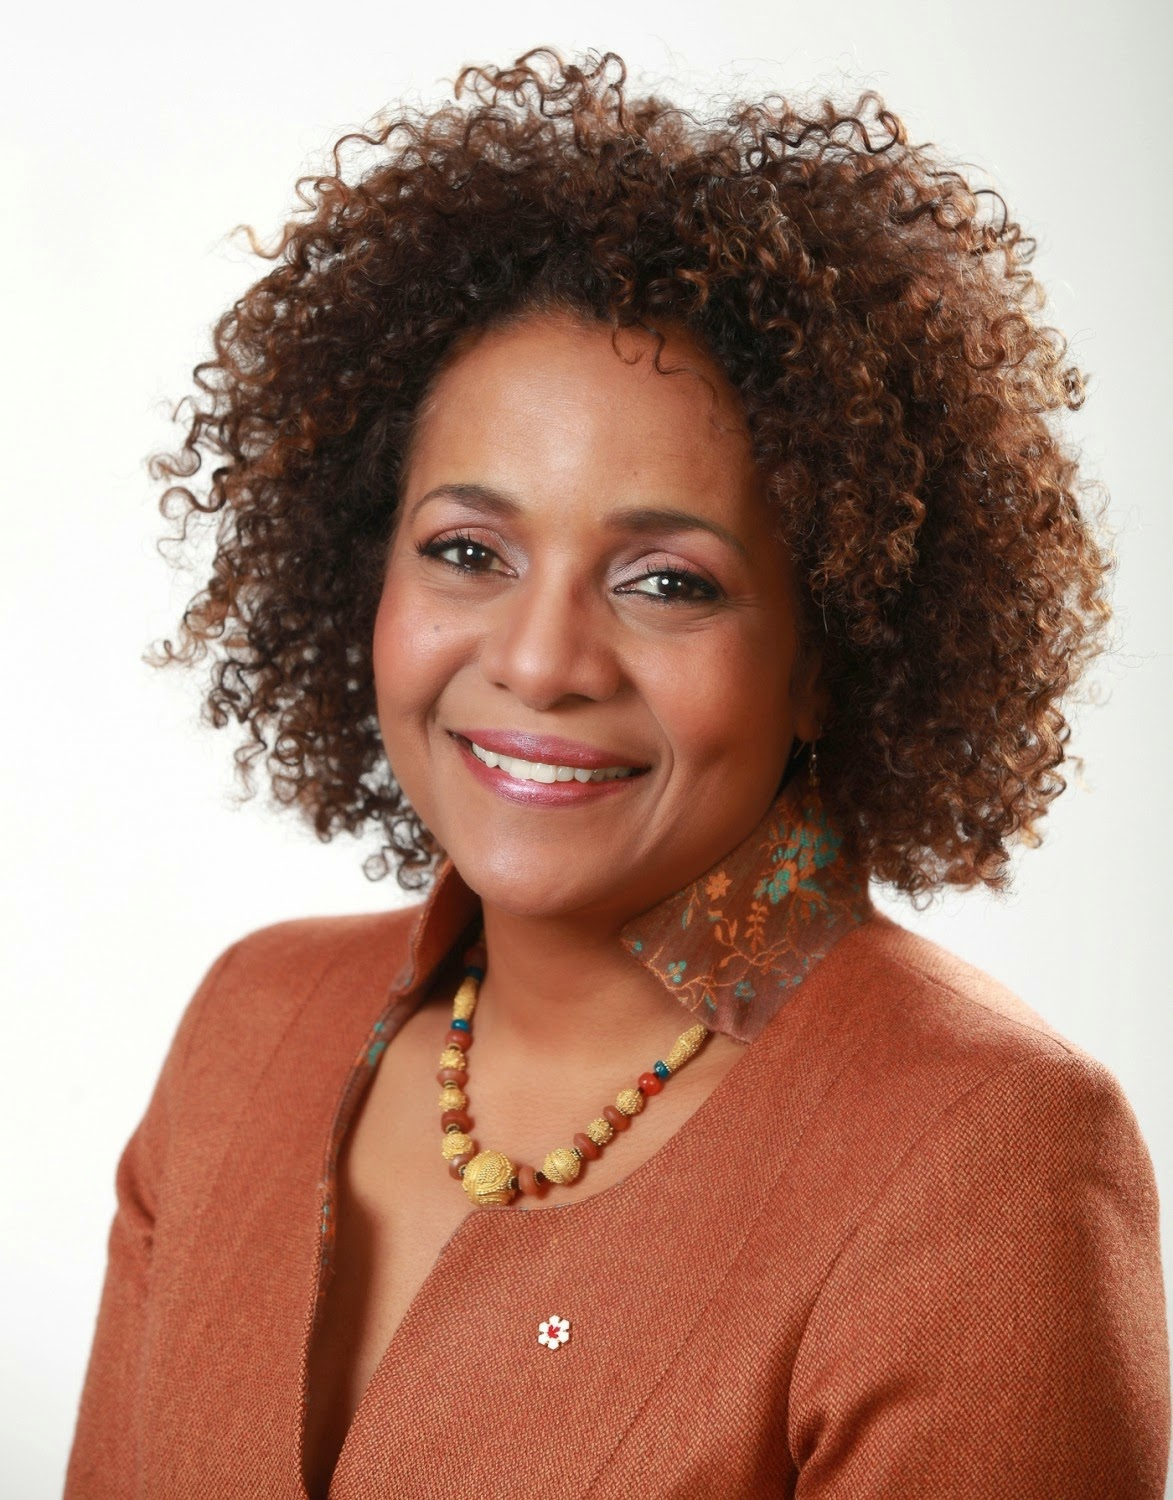 Michaëlle Jean shares lifes lessons and blessings